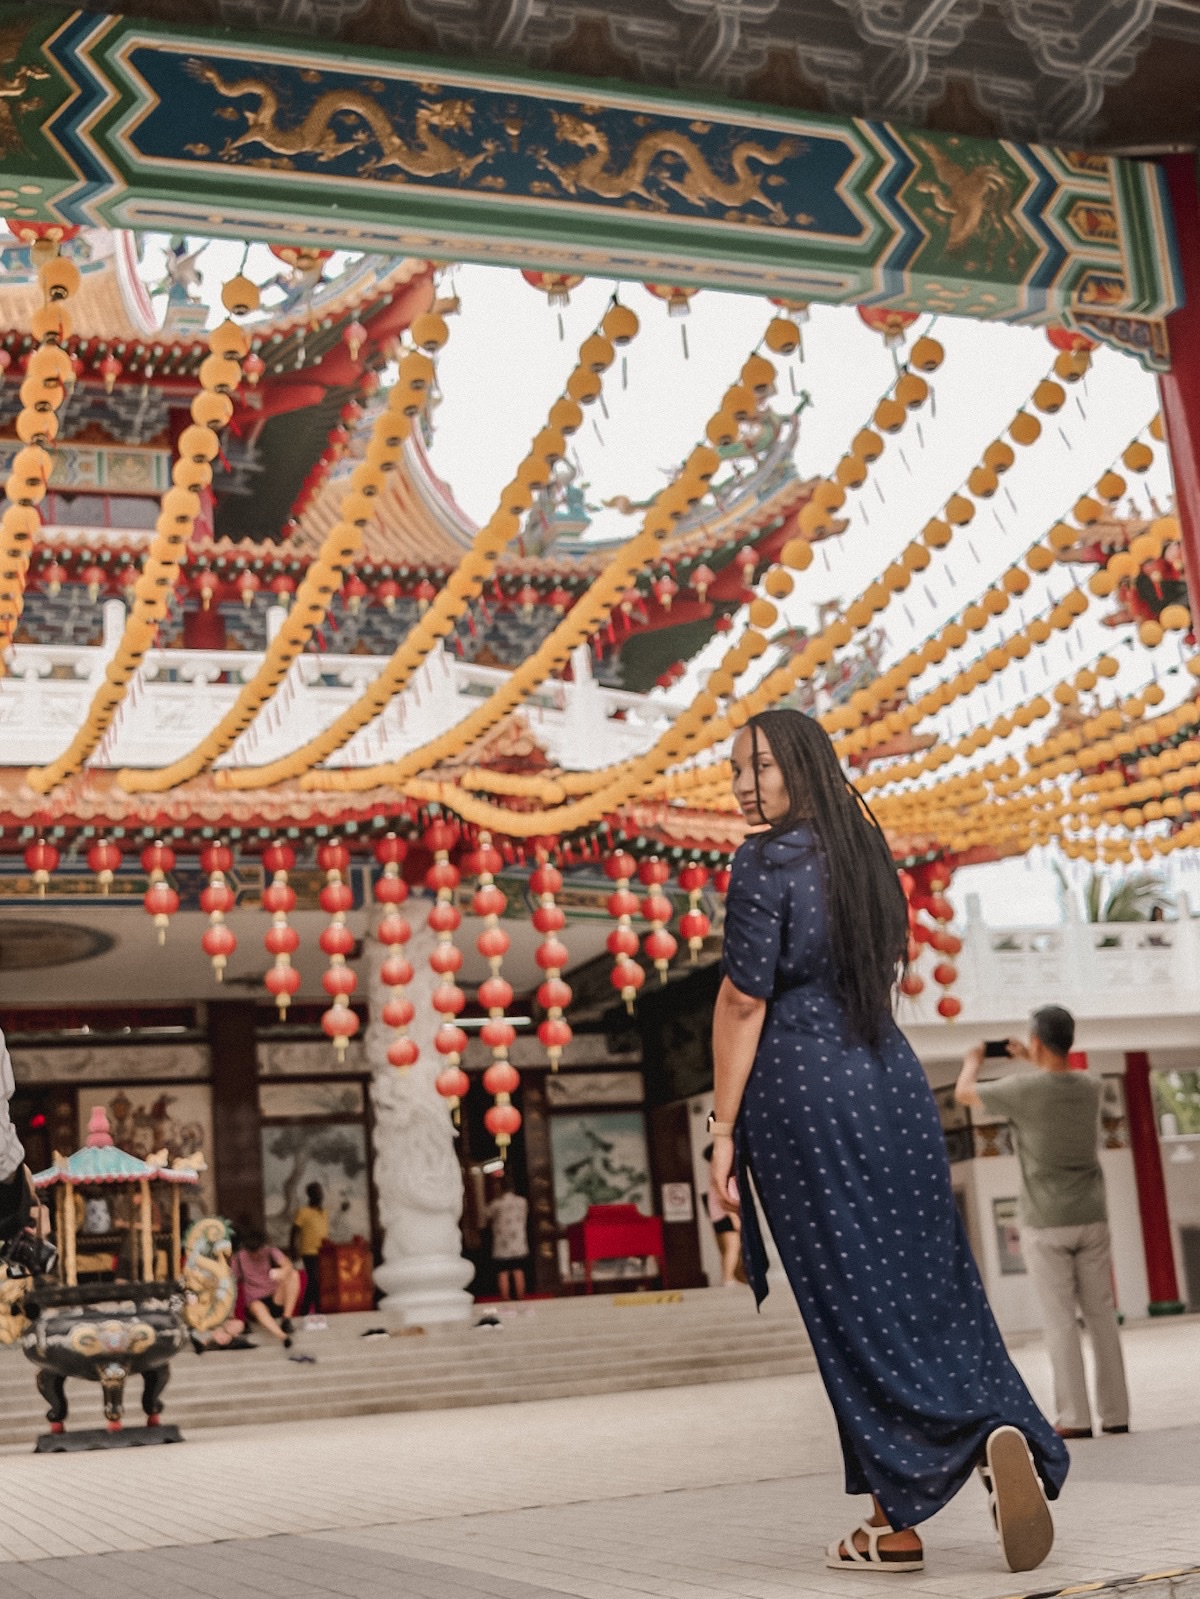 Illustrated by Sade - Standing in front of Thean Hou Temple entrance admiring decor